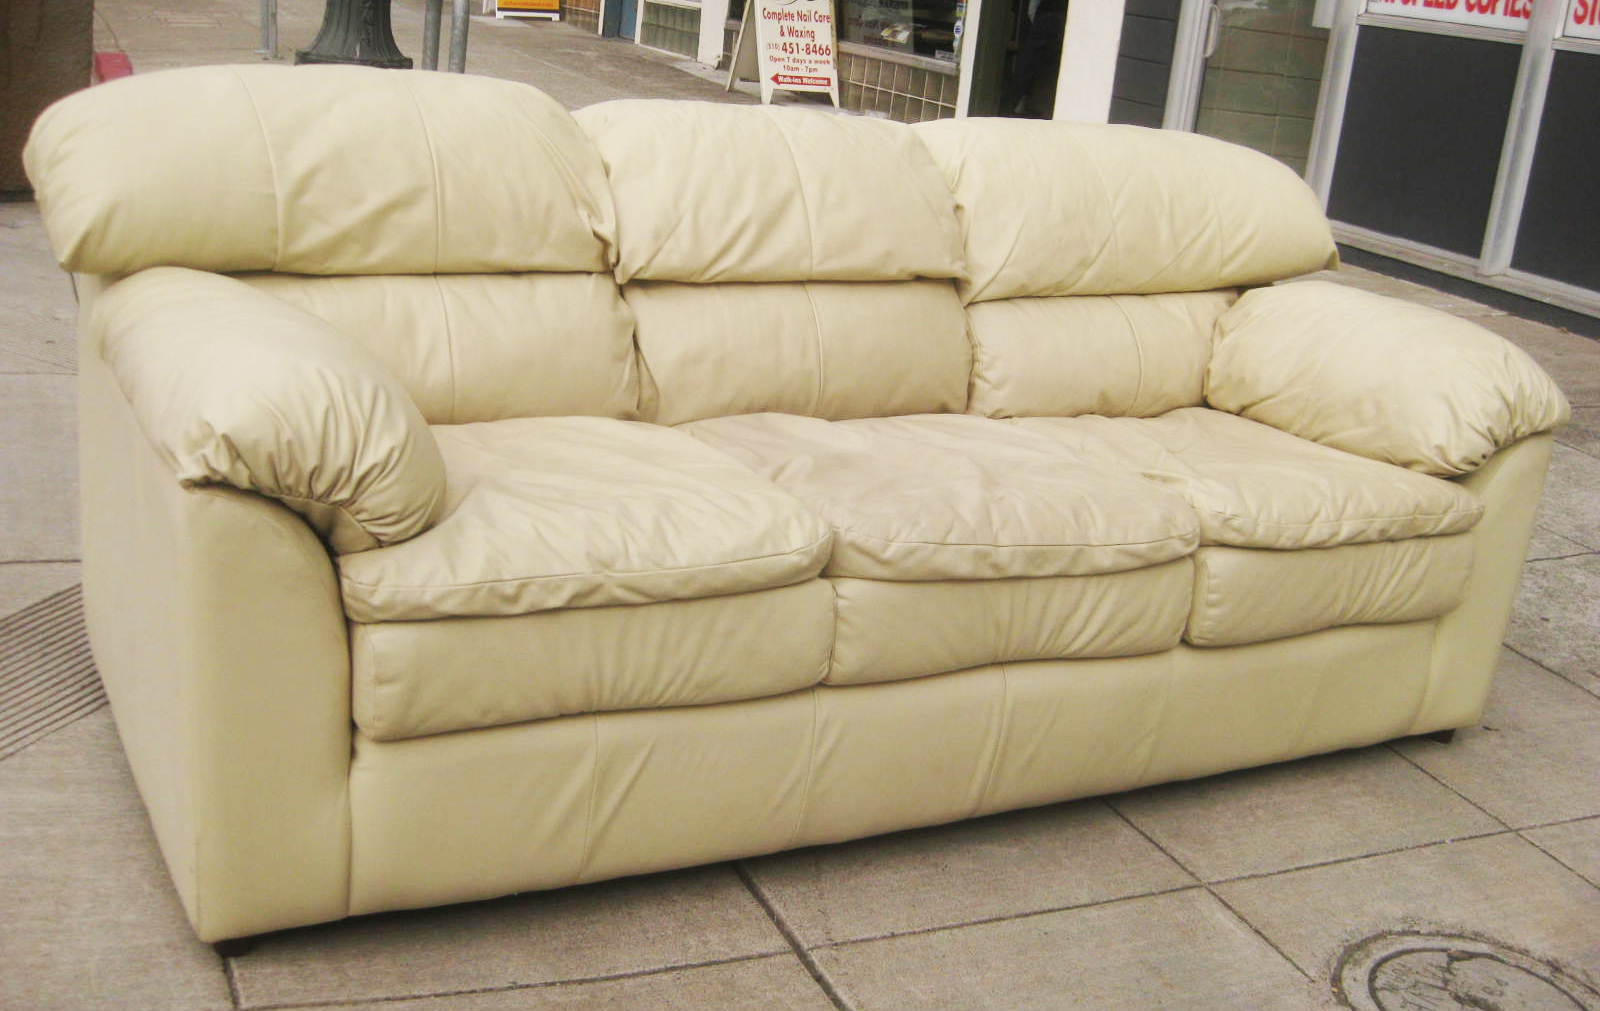 Uhuru furniture collectibles sold beige leather sofa for Furniture leather sofa